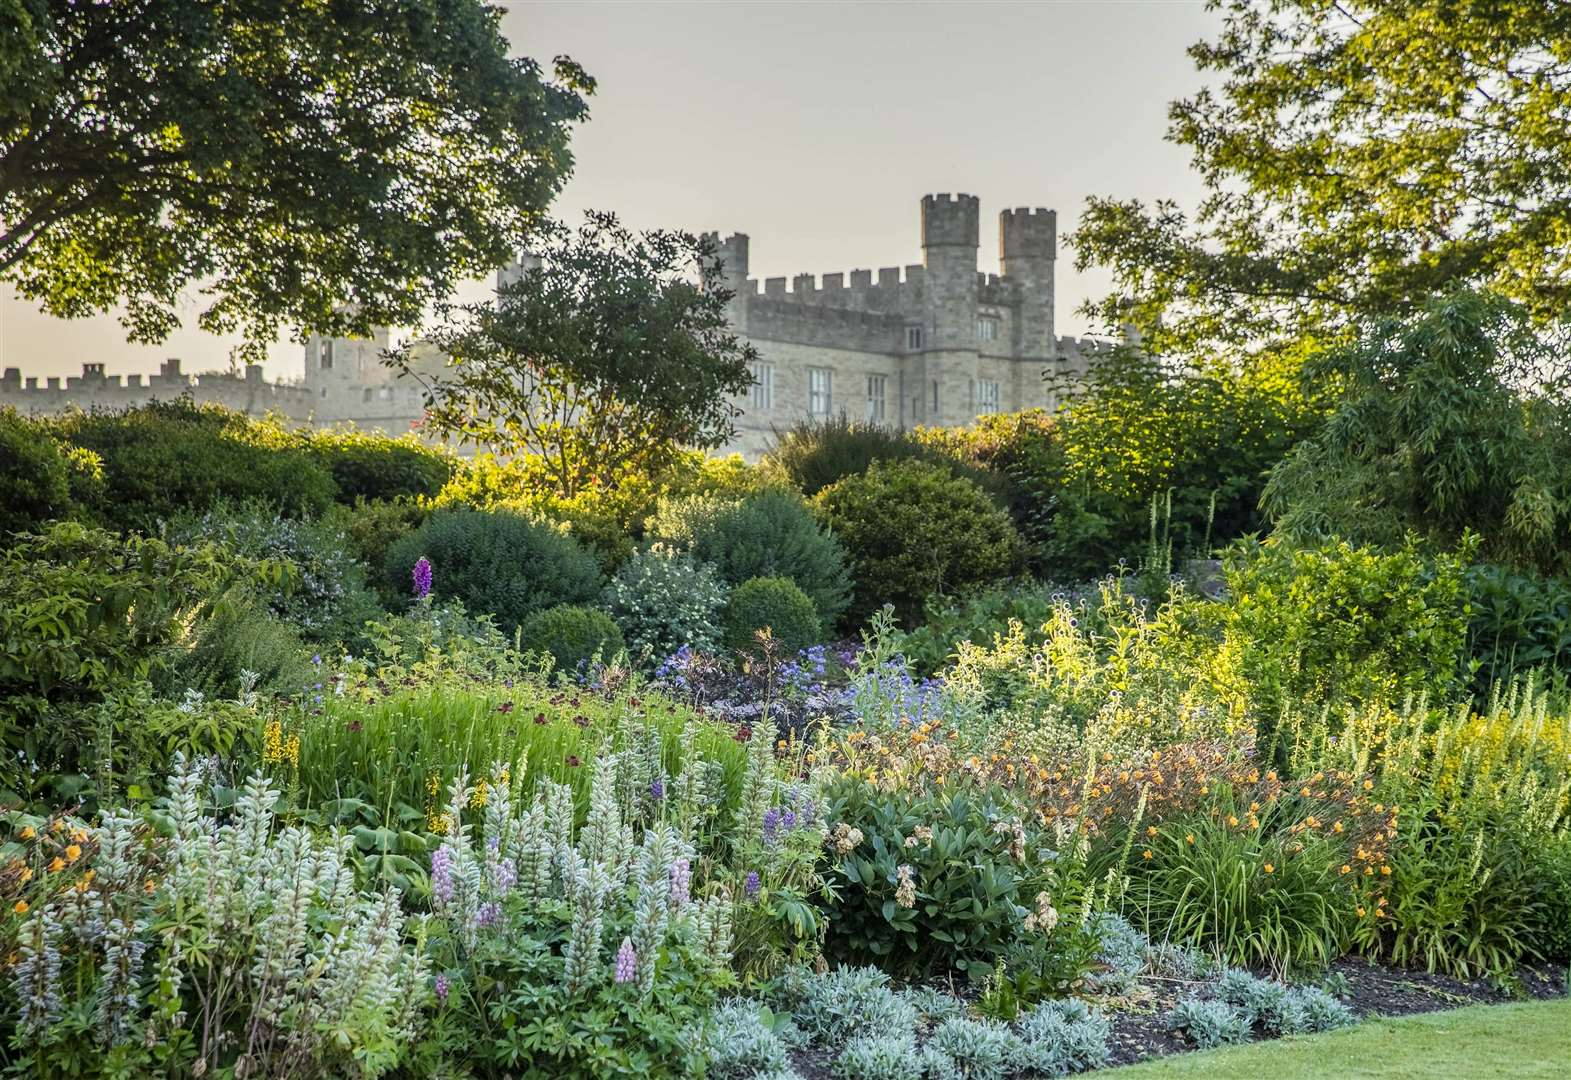 Garden party beckons at Leeds Castle